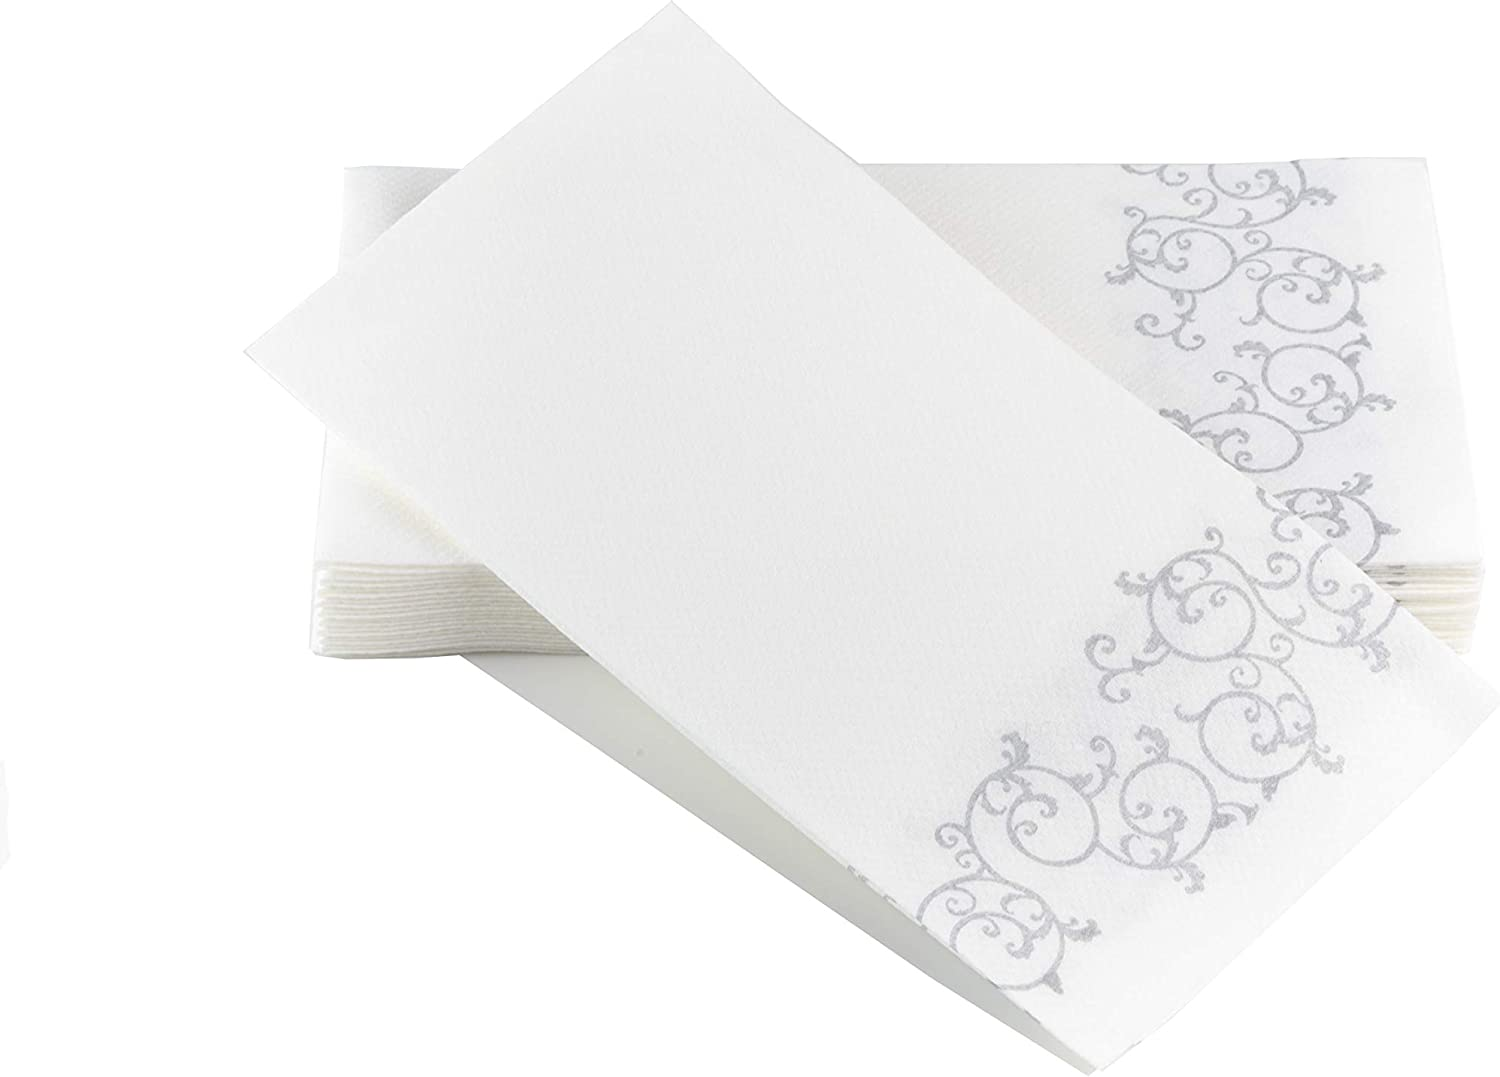 Simulinen Guest Towels for Bathroom - Silver Floral - Disposable Paper Towels - Box of 100 - Perfect Size: 12x17 inches Unfolded & 8.5x4 inches Folded